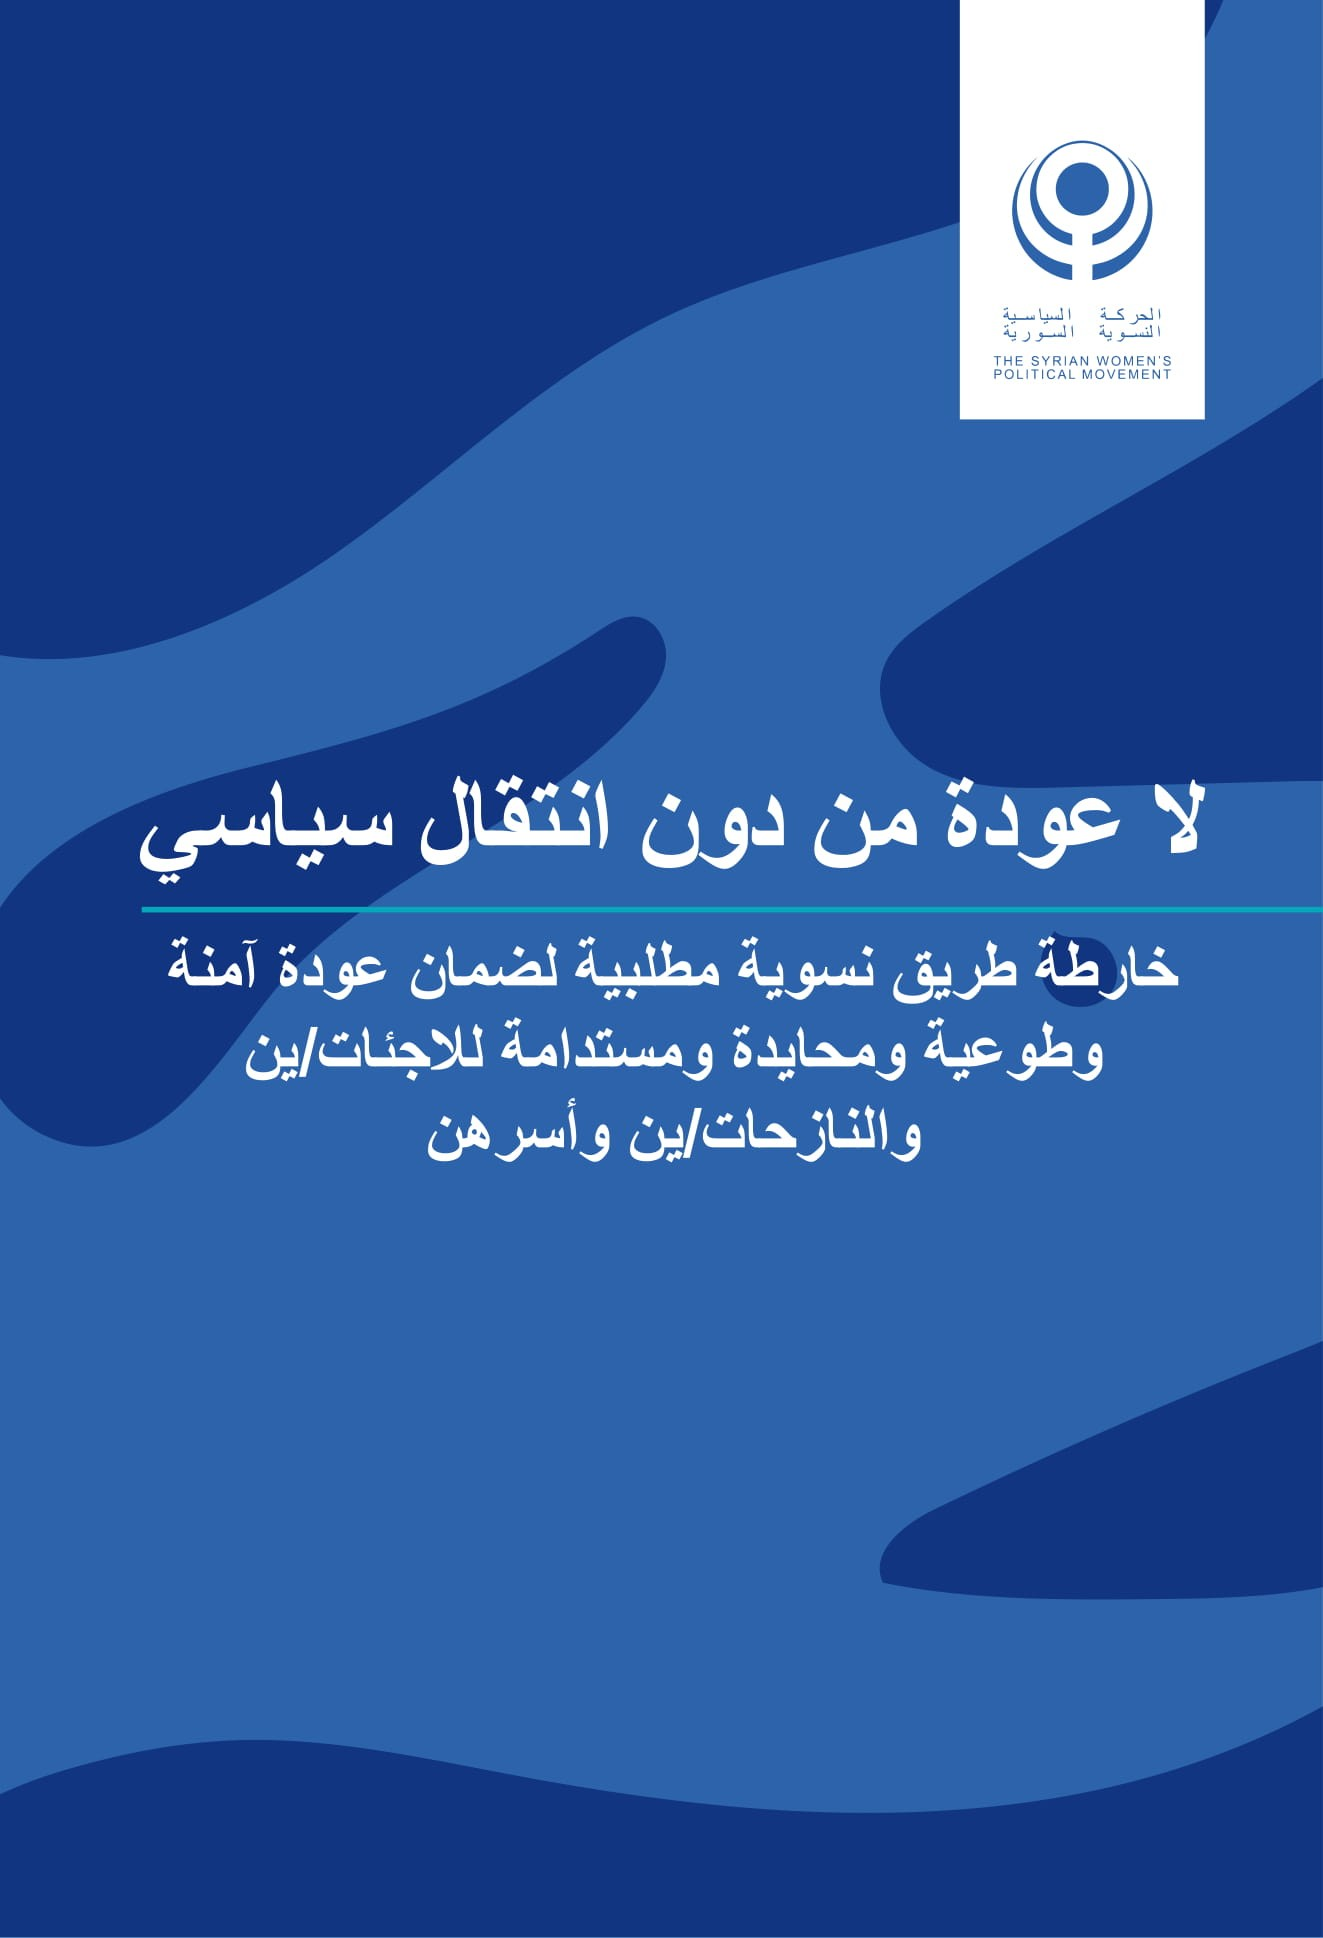 No Return without Political Transition: Feminist Roadmap to Ensure Safe, Voluntary, Neutral, and Sustainable Return of Refugees and IDPs